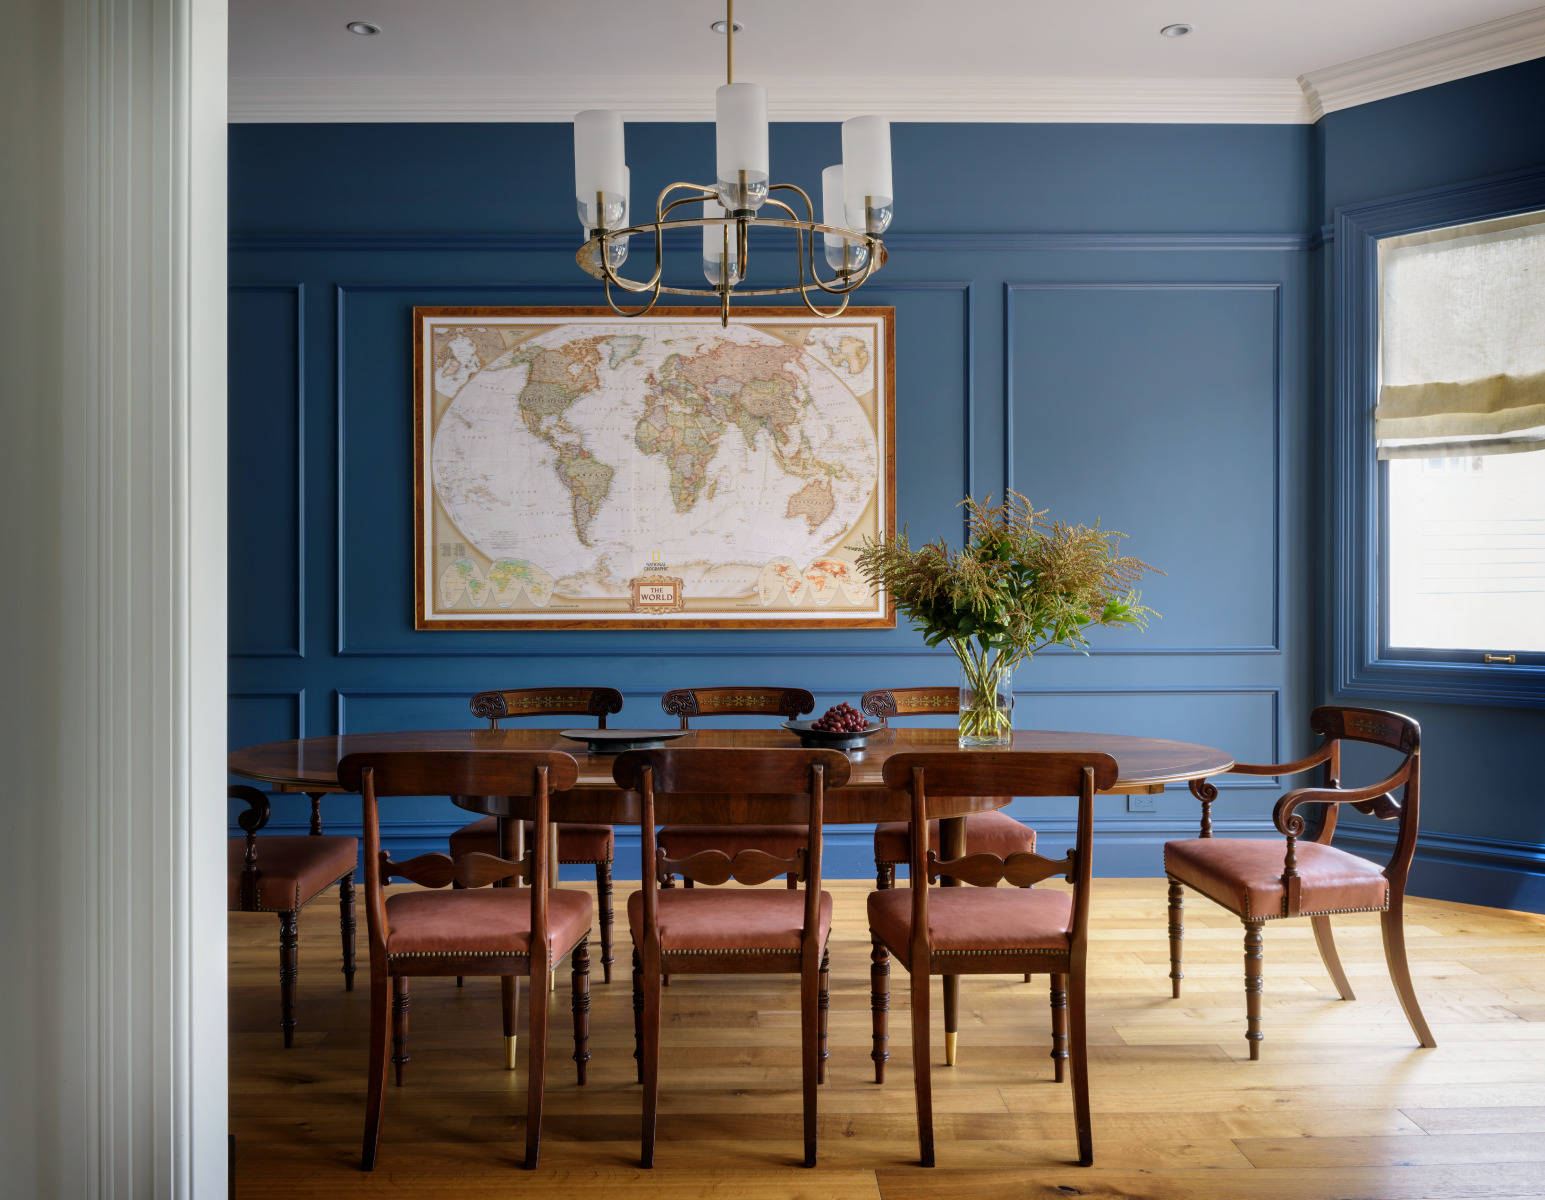 JKA Design  selected a rich blue wall color for the dining room of this Cole Valley Victorian. It is the perfect backdrop for the clients' collection of antique maps.